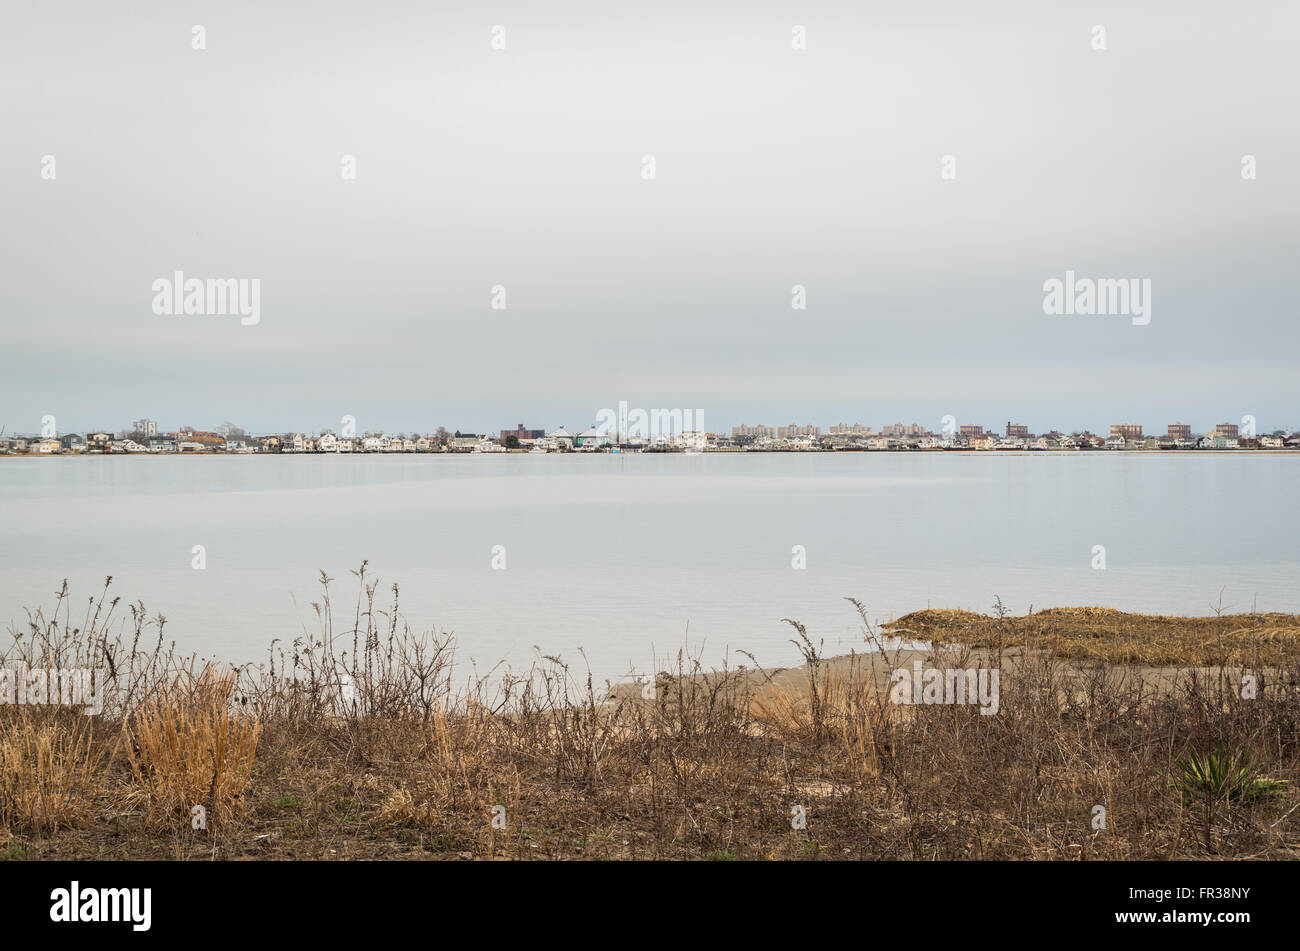 View across Jamaica Bay Wildlife Refuge towards Broad Channel, a suburban waterside town in Queens, New York. - Stock Image